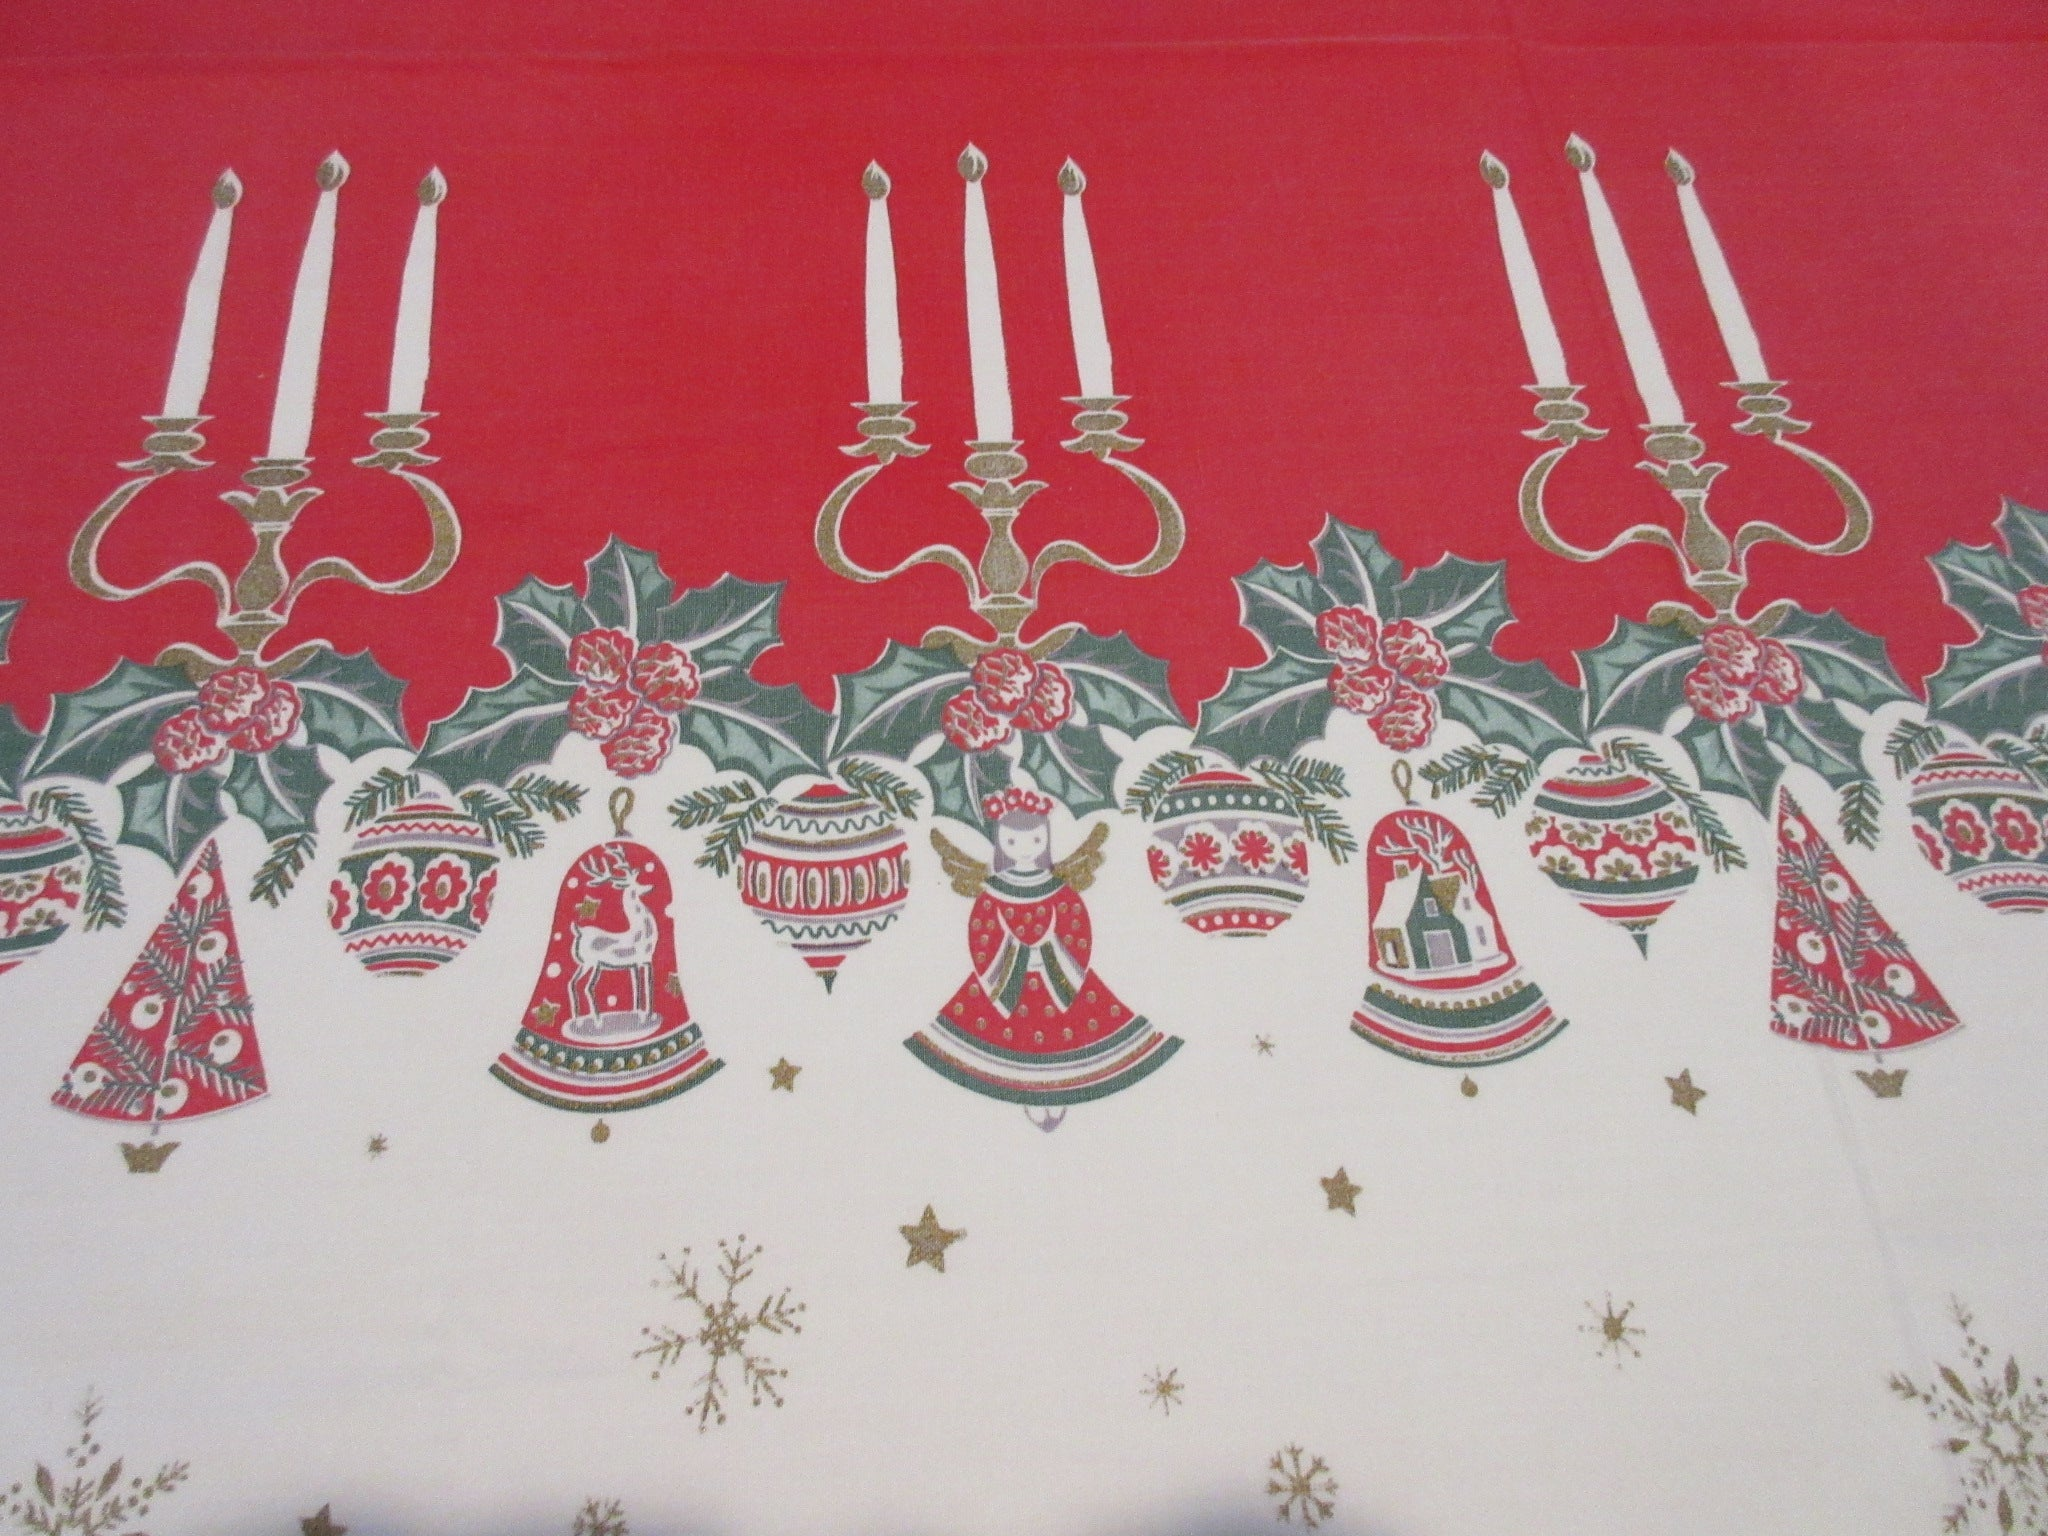 Large Border Print Shabby Christmas Vintage Printed Tablecloth (100 X 59)